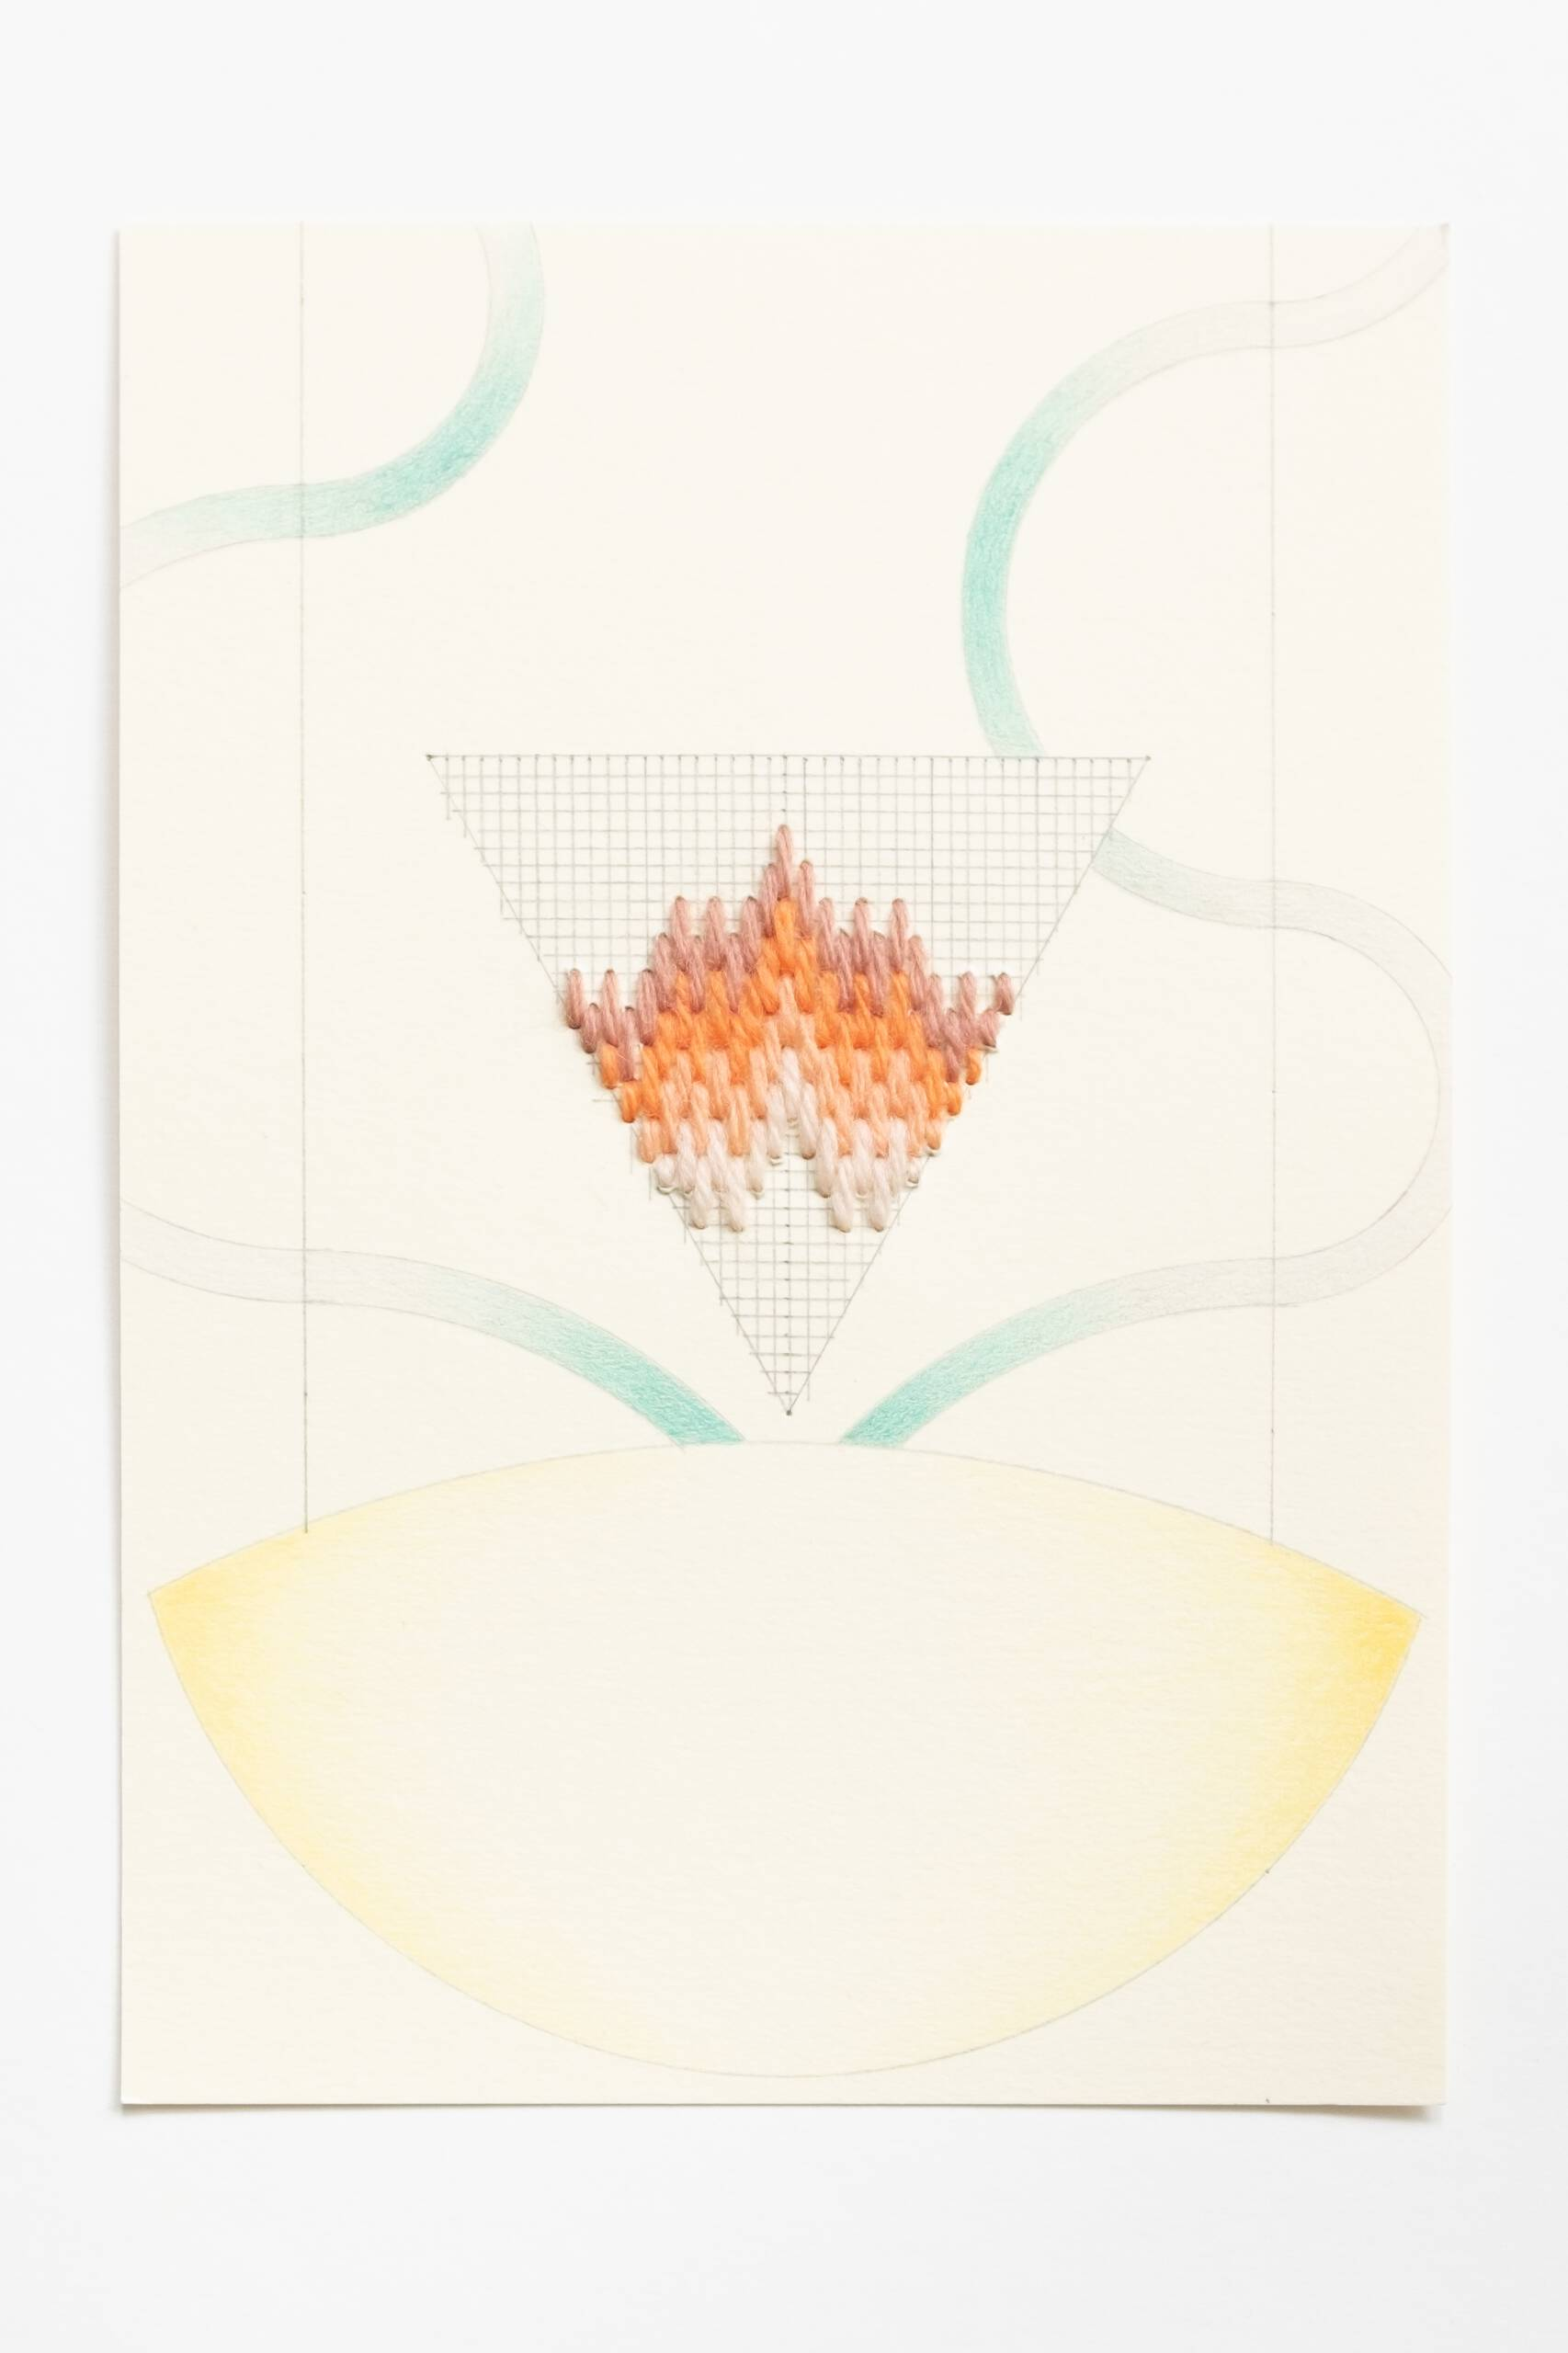 Bargello triangle [brown-peach on yellow], Hand-embroidered wool, pencil and colored pencil on paper, 2020